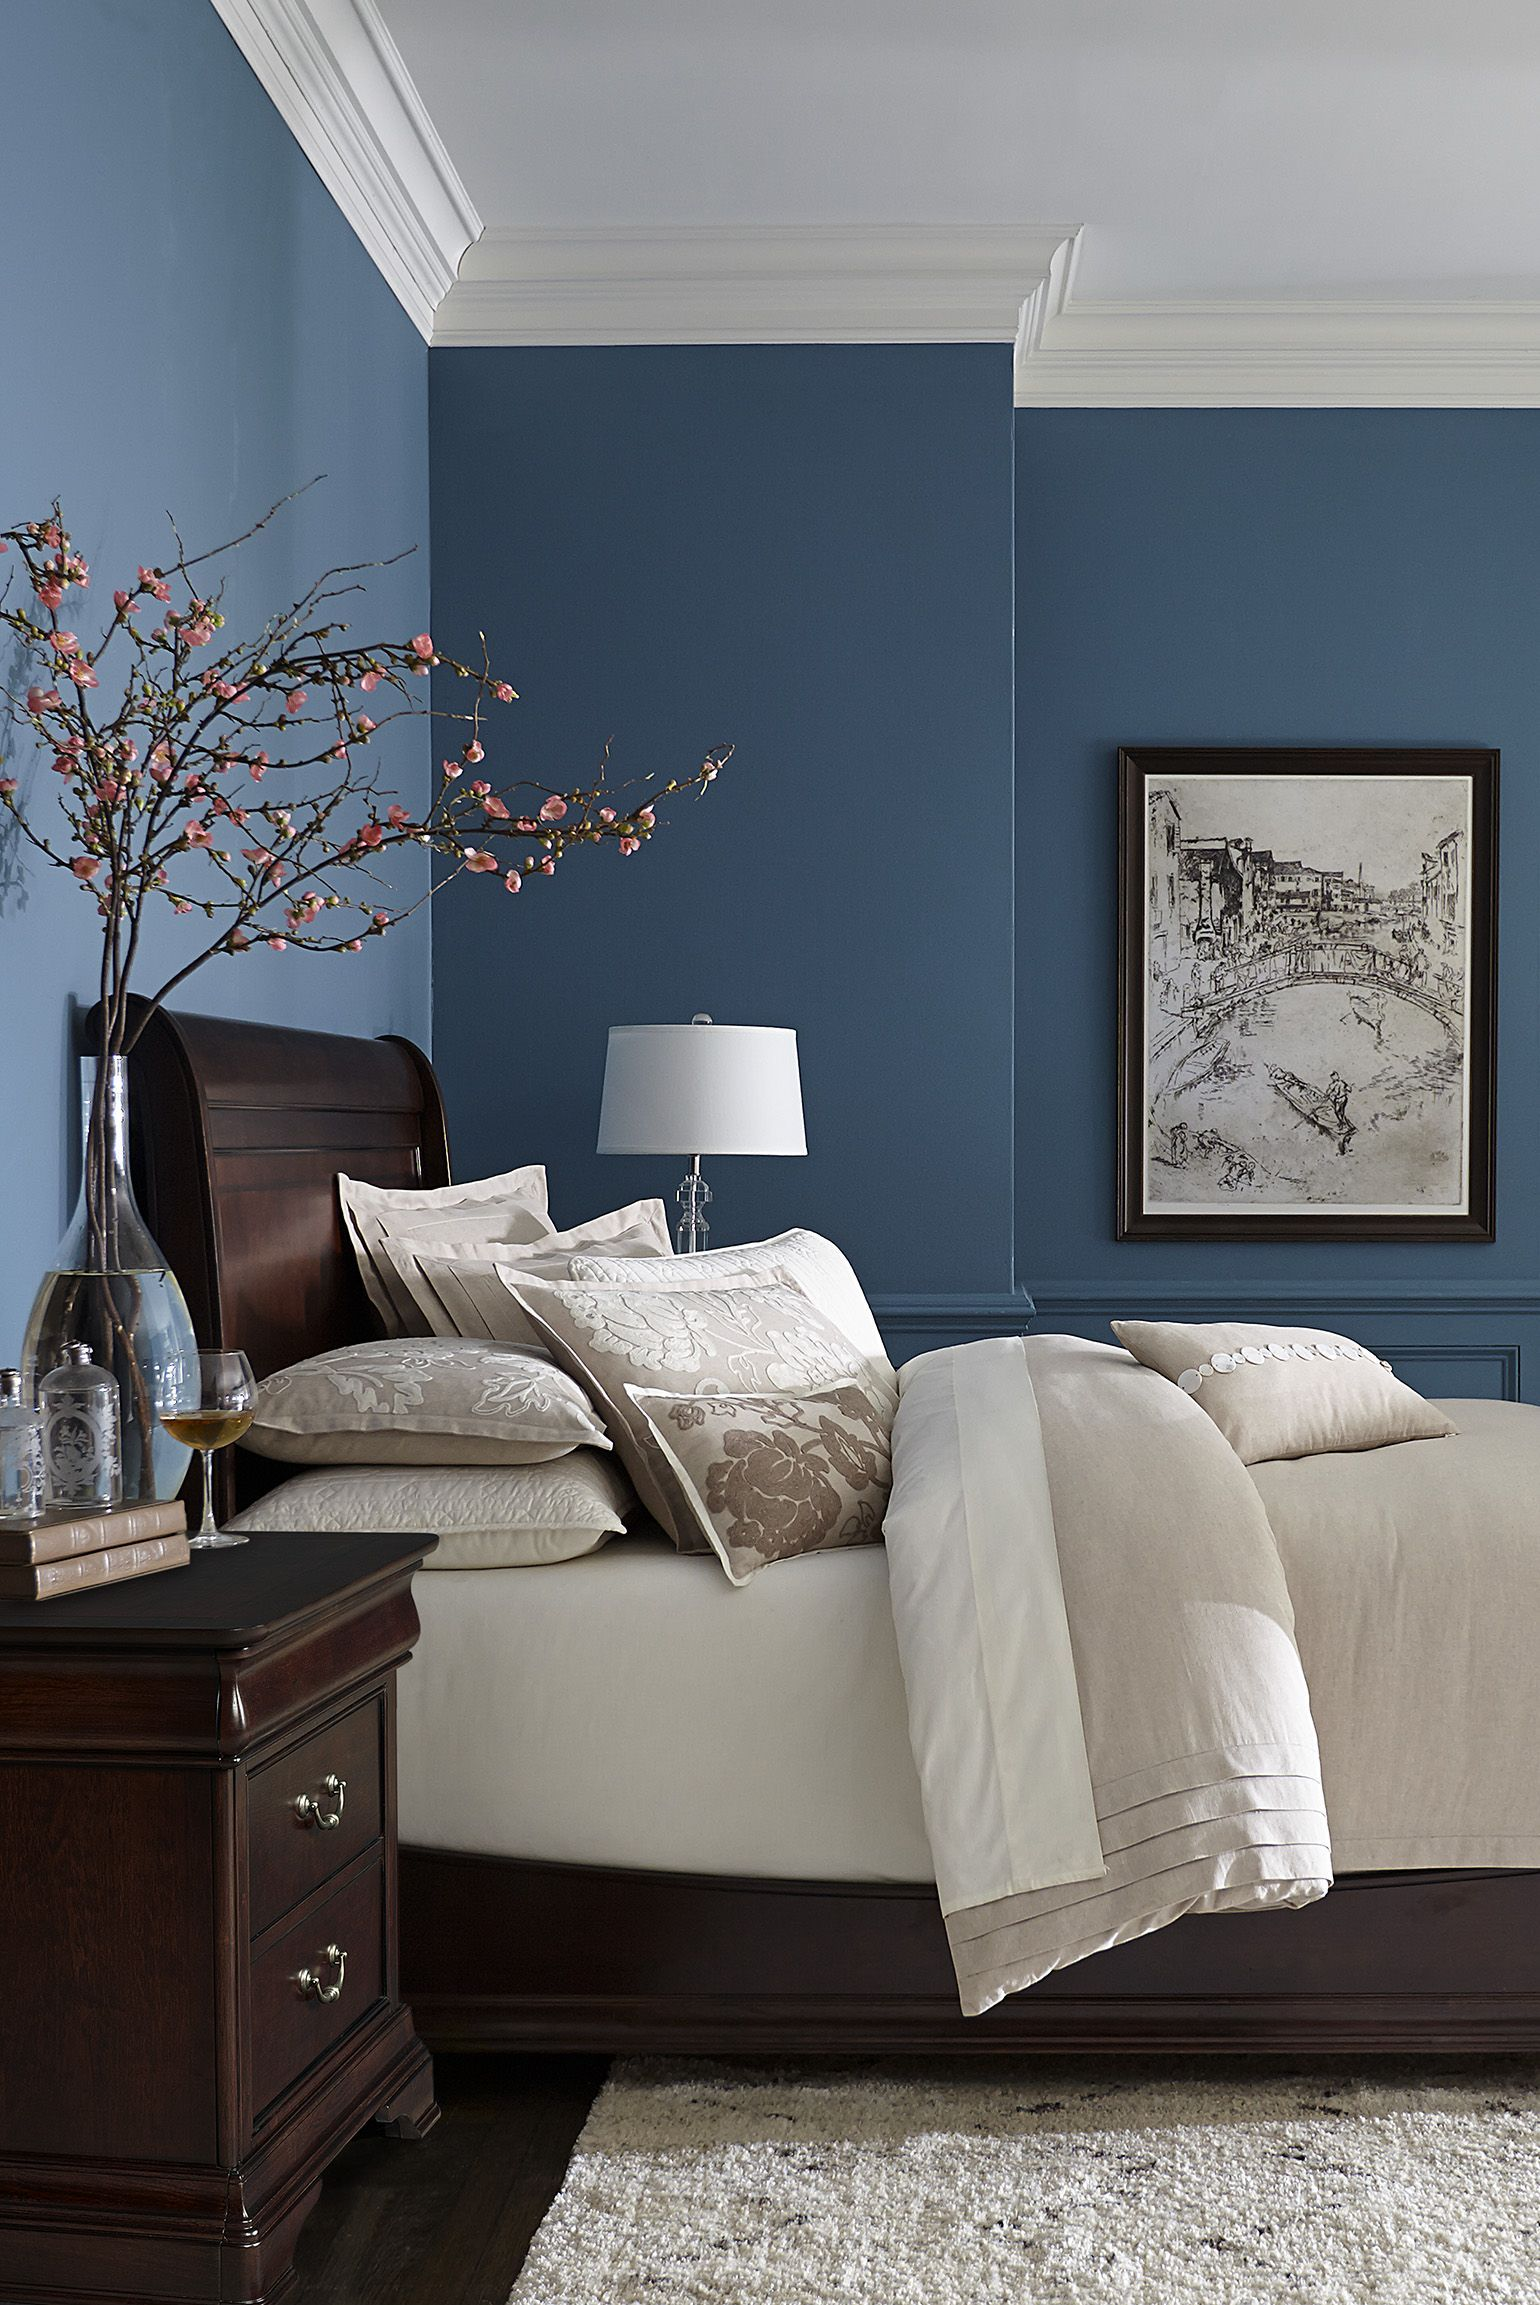 Made With Hardwood Solids With Cherry Veneers And Walnut Inlays Our Orleans Bedroom Collection Brin Blue Bedroom Walls Best Bedroom Colors Bedroom Wall Colors